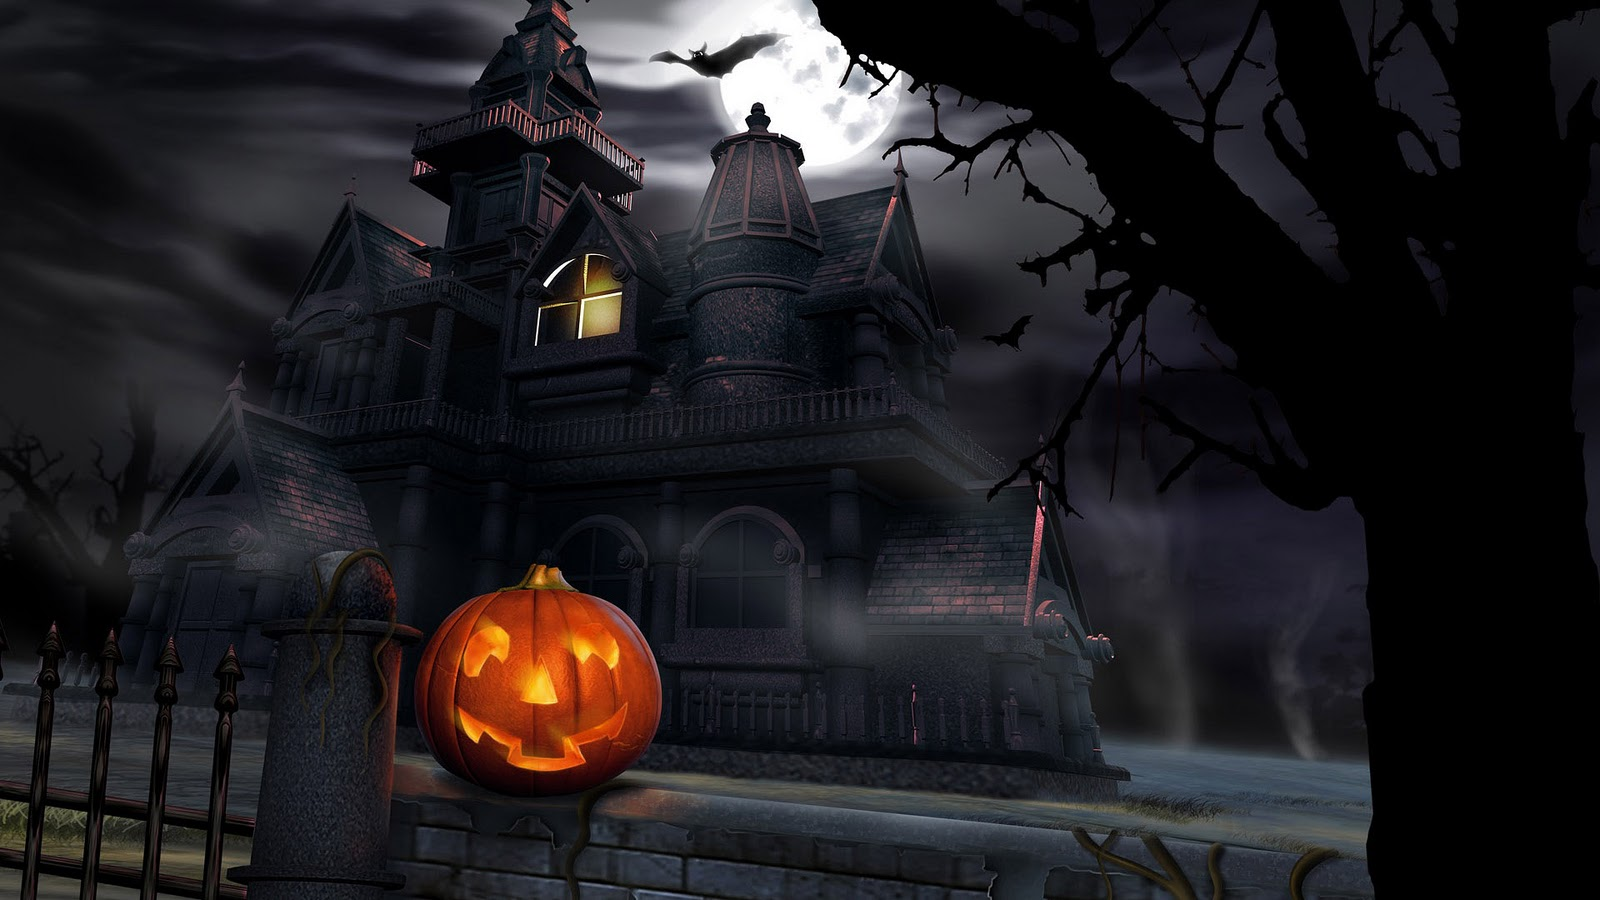 http://4.bp.blogspot.com/-3jDleKr1yIk/TsTajwCgS2I/AAAAAAAABLc/OwMh-SyPk8M/s1600/Halloween-desktop-Wallpapers-HD-photo-images-1.jpg